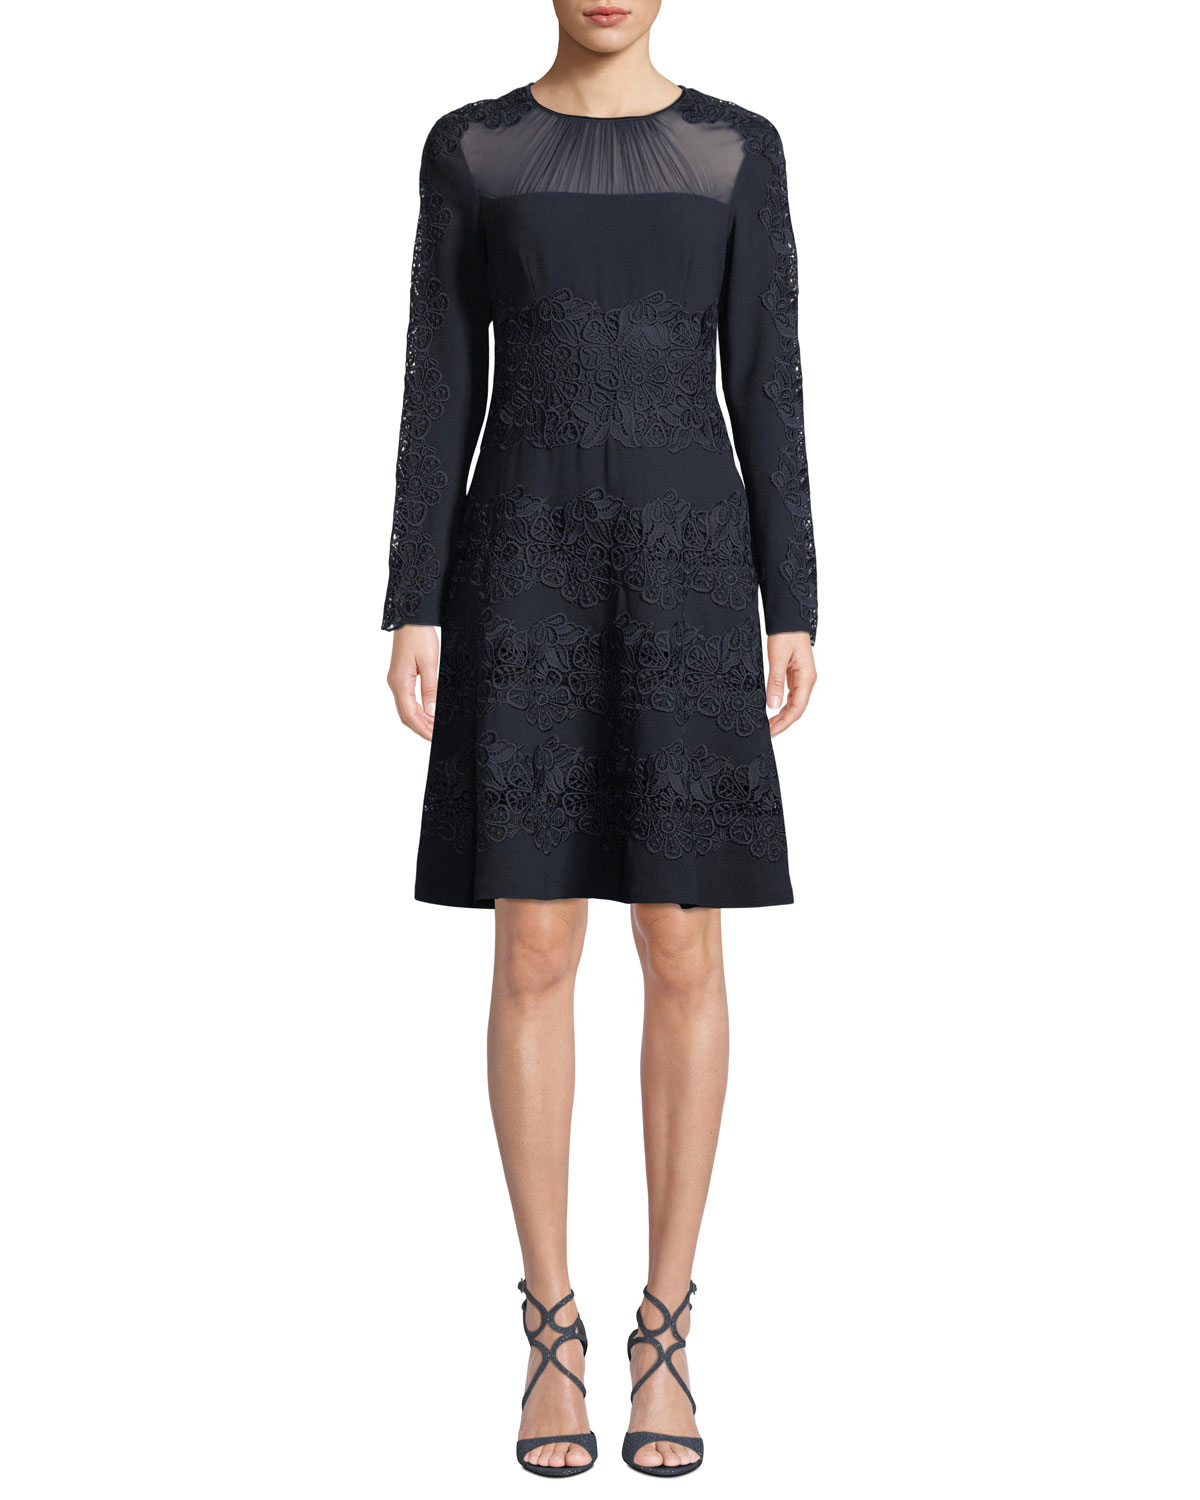 Elie Tahari Cora Shirred Jewel-Neck Long-Sleeve A-Line Crepe Dress w/ Floral-Guipure